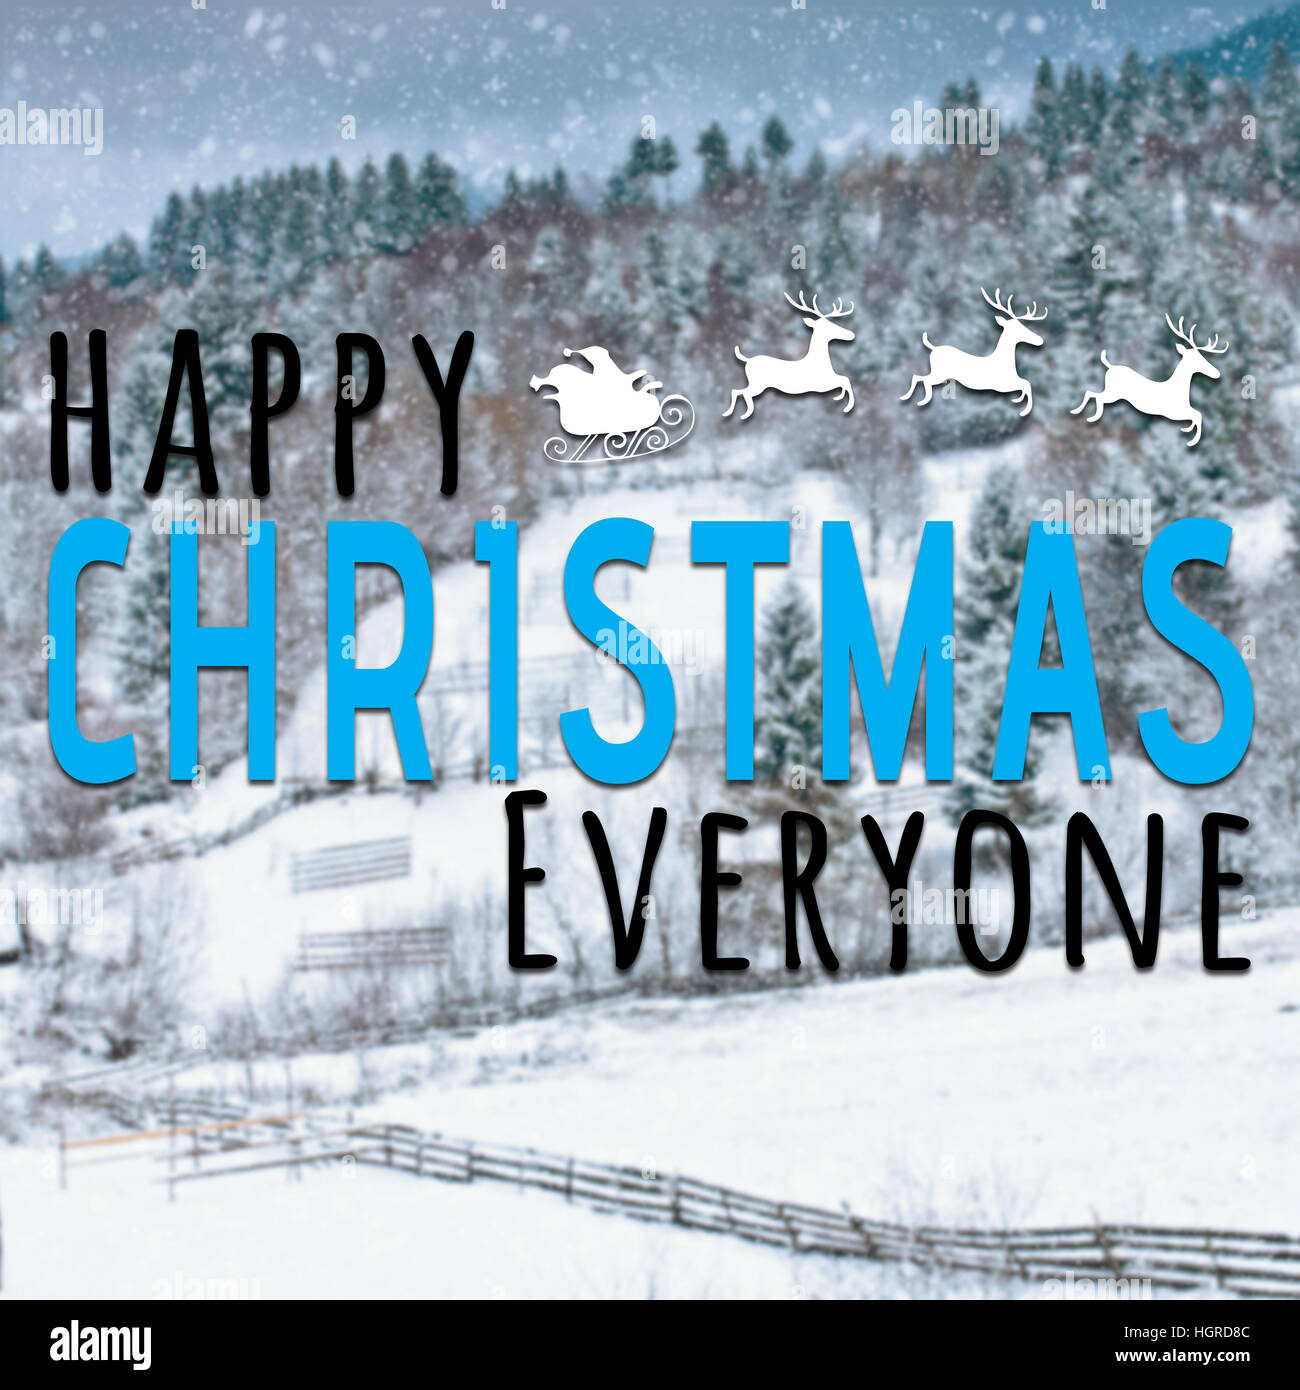 Happy christmas everyone inspirational quote on snow background with holiday symbol - Stock Image